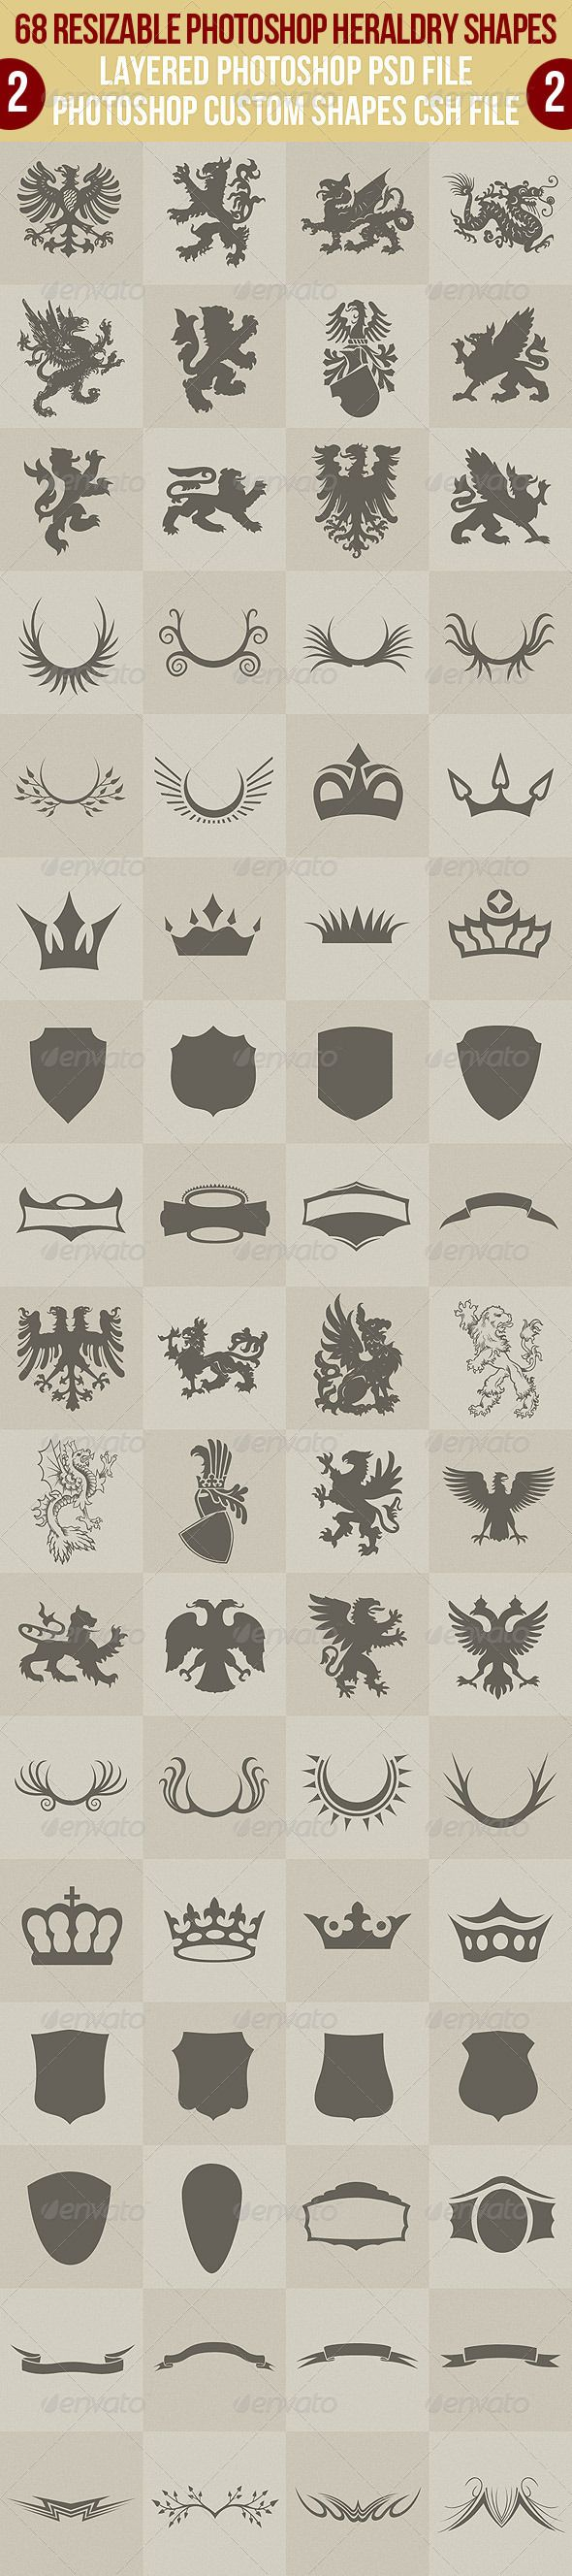 68 Photoshop Heraldry Shapes 2 - http://graphicriver.net/item/68-photoshop-heraldry-shapes-2/2622486?ref=cruzine